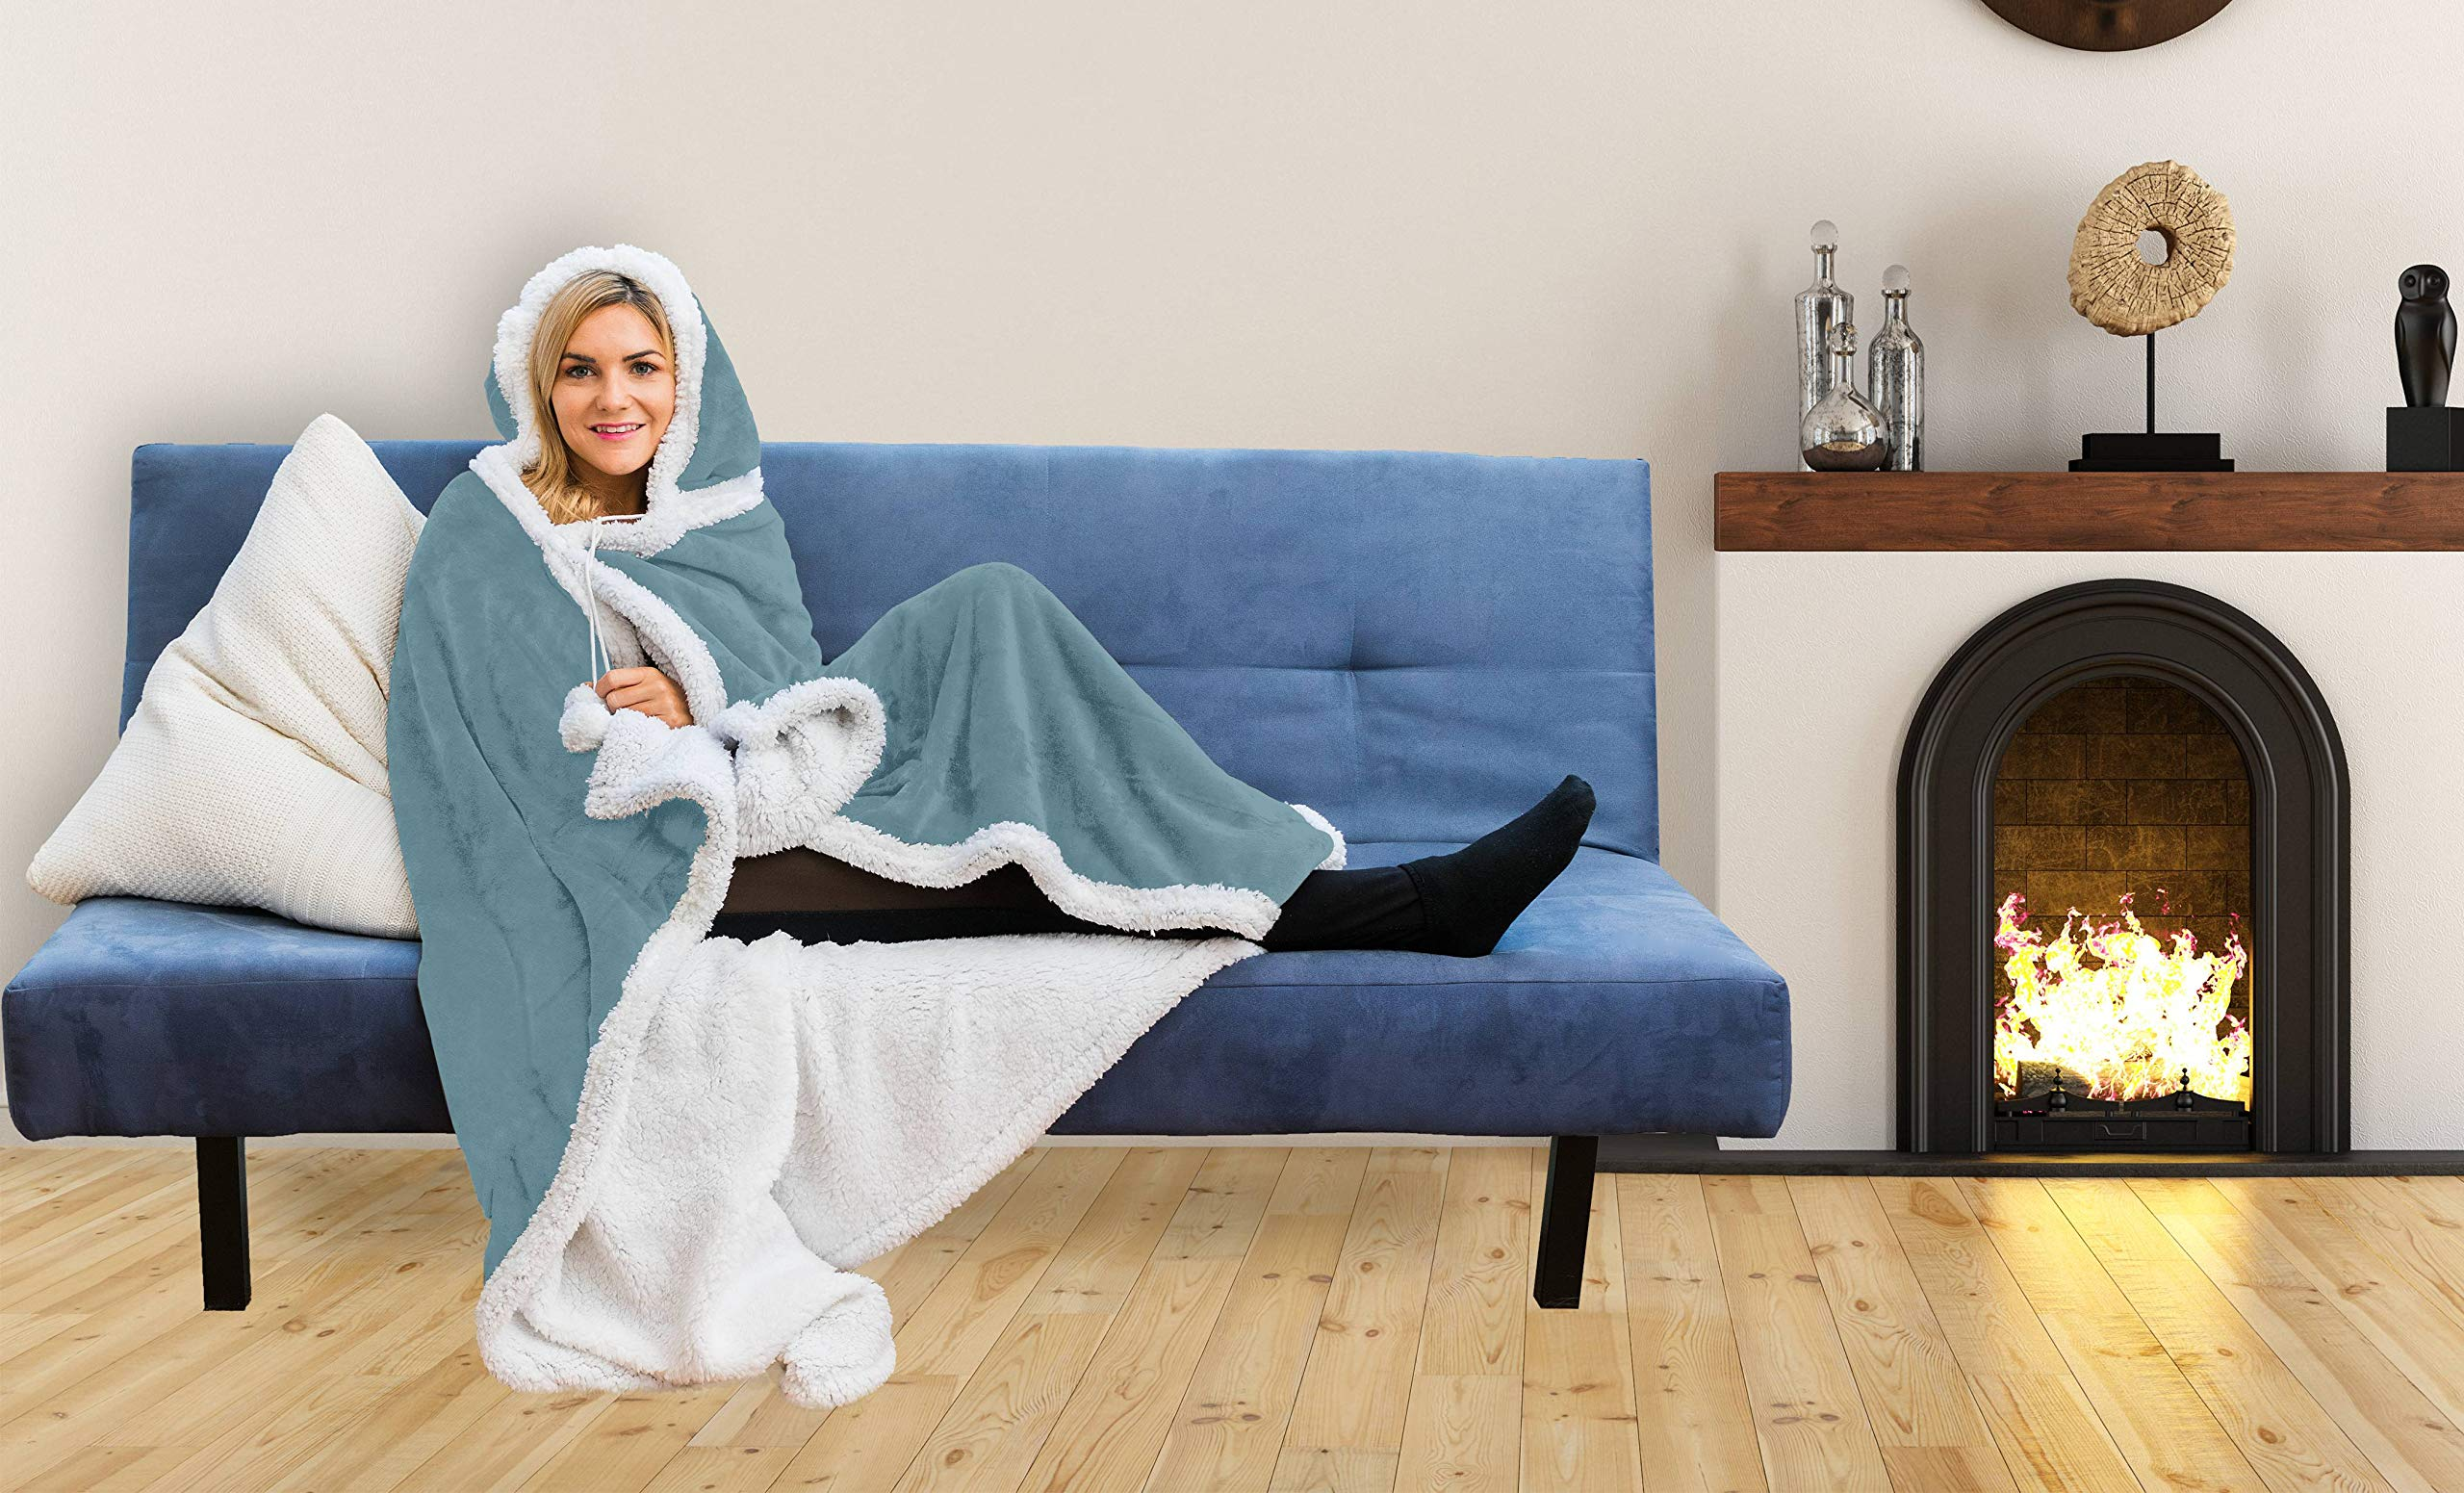 kensie. Sherpa Wearable Blanket with Pockets Super Soft Warm Comfy Large Fleece Plush Sleeved TV Throws Wrap Robe Blanket for Adult Women and Men (51x71, Leopard) (Tourmaline)